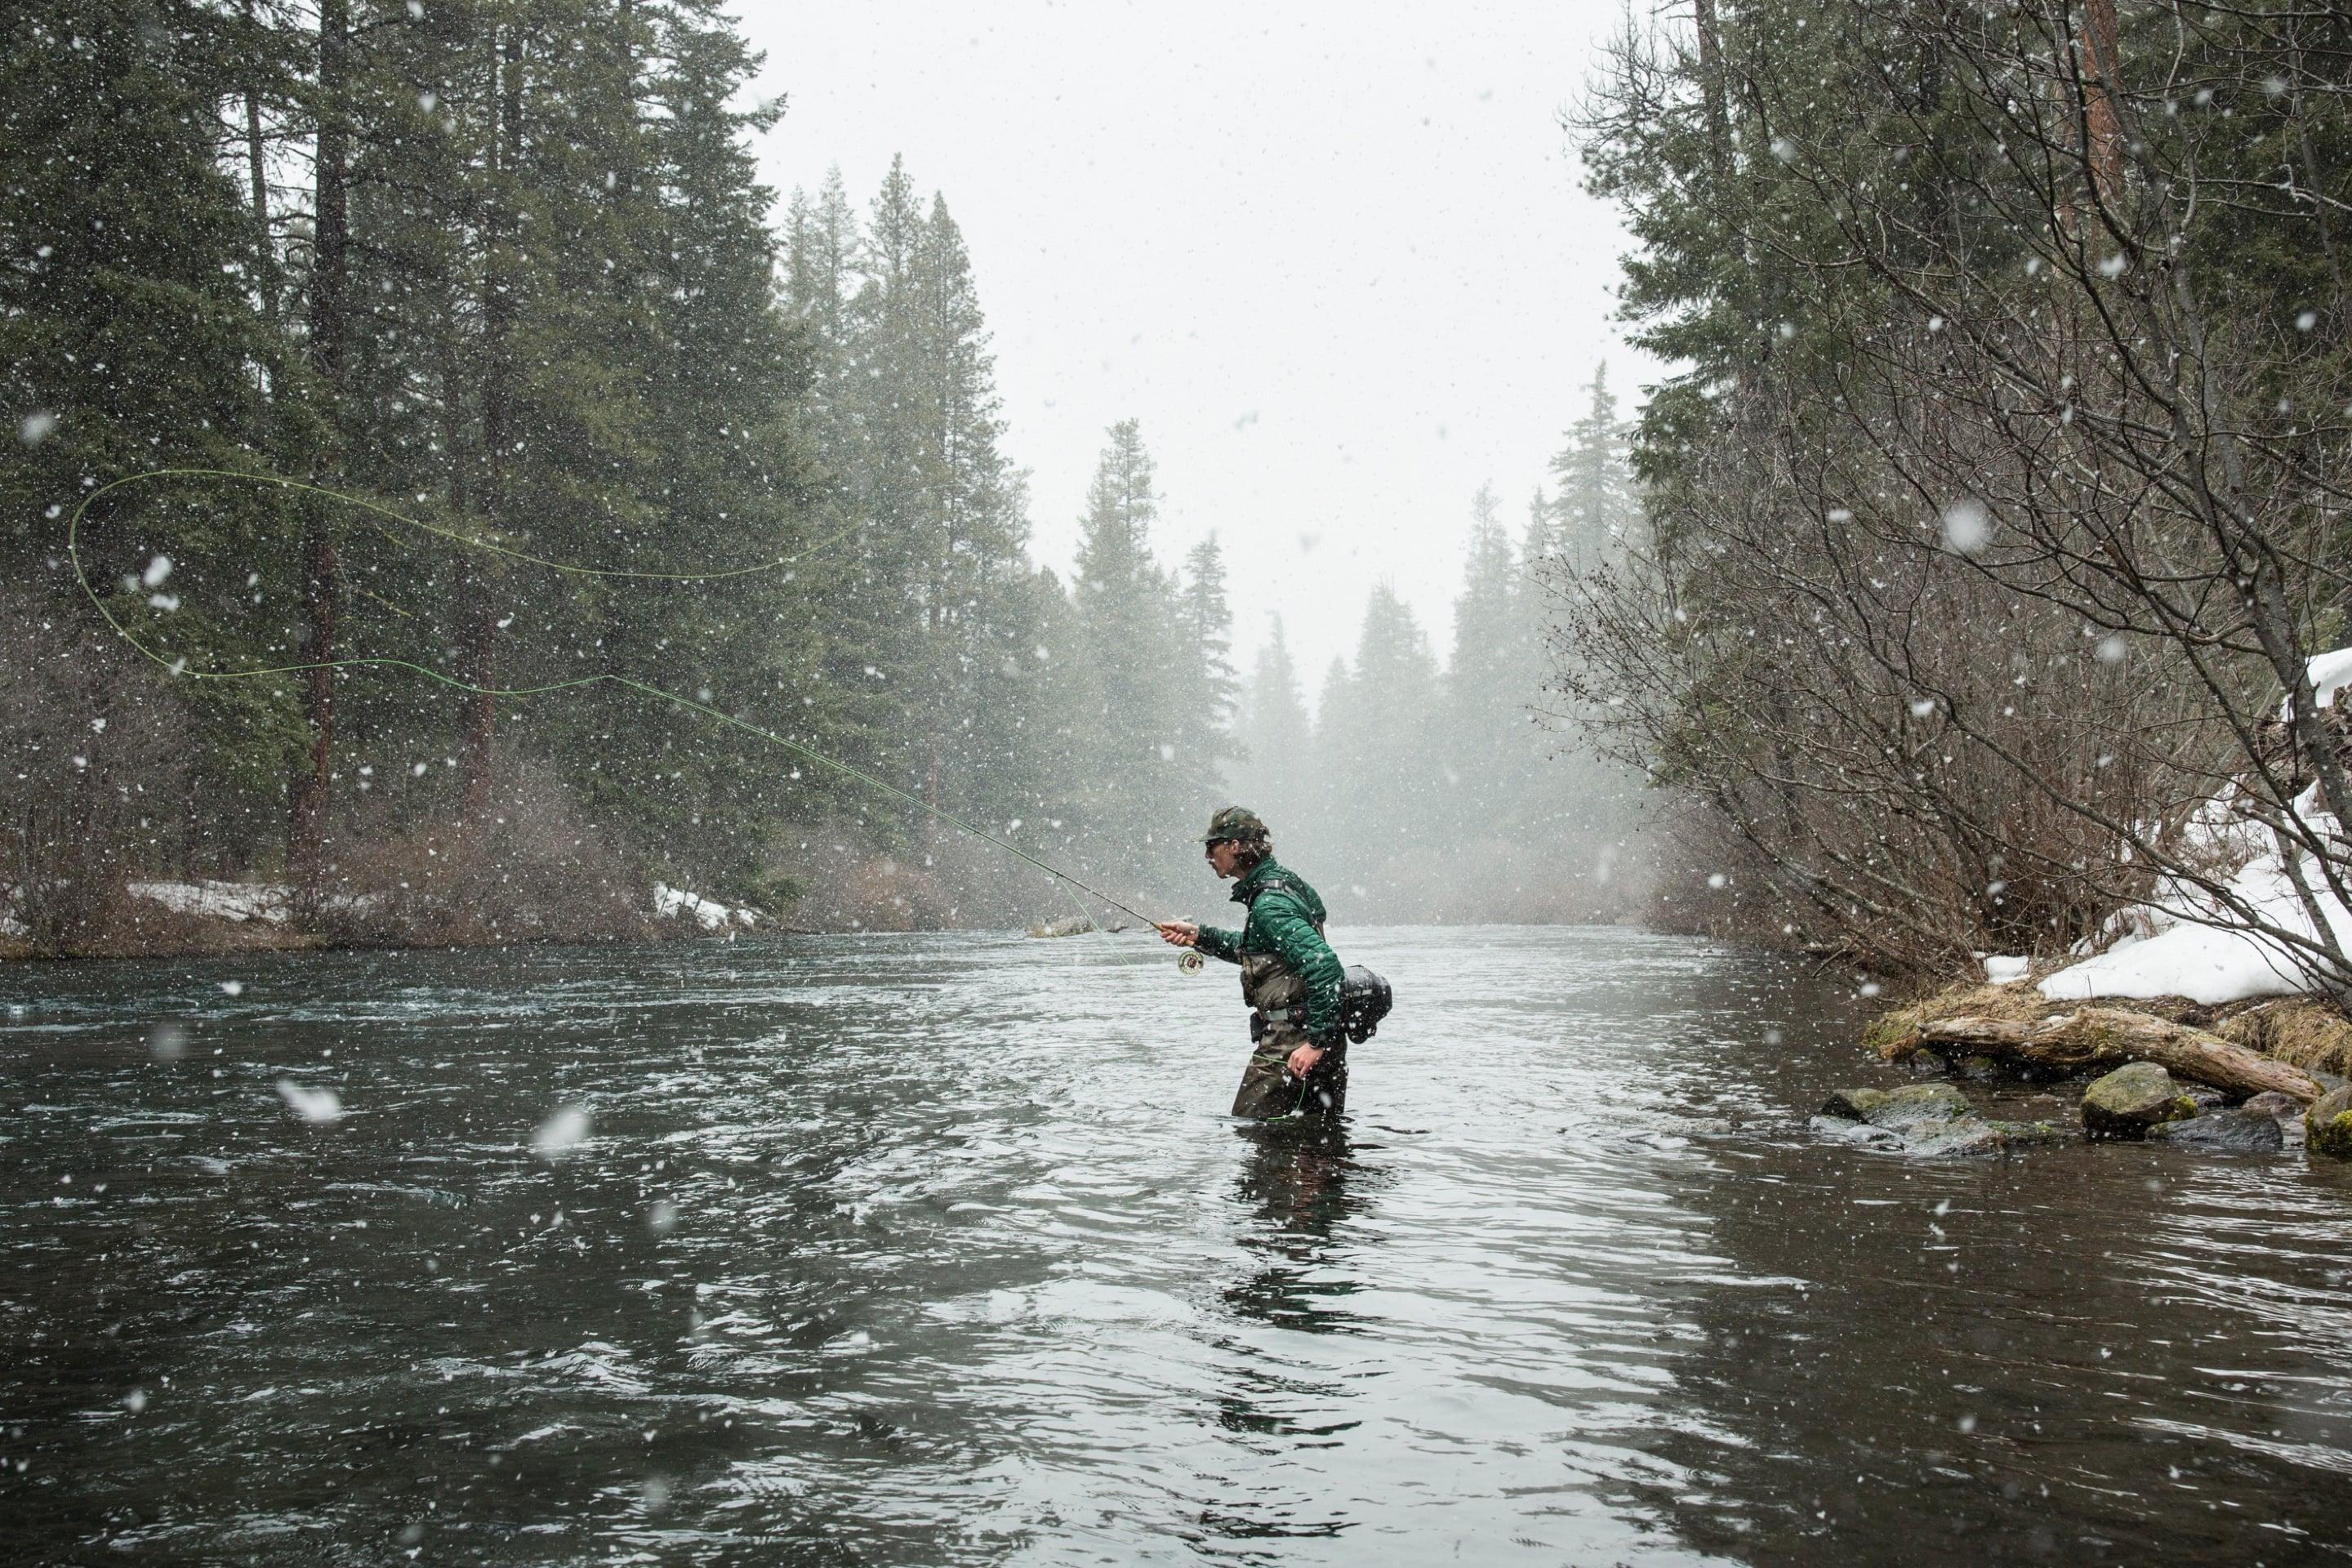 Wading rivers to fly fish